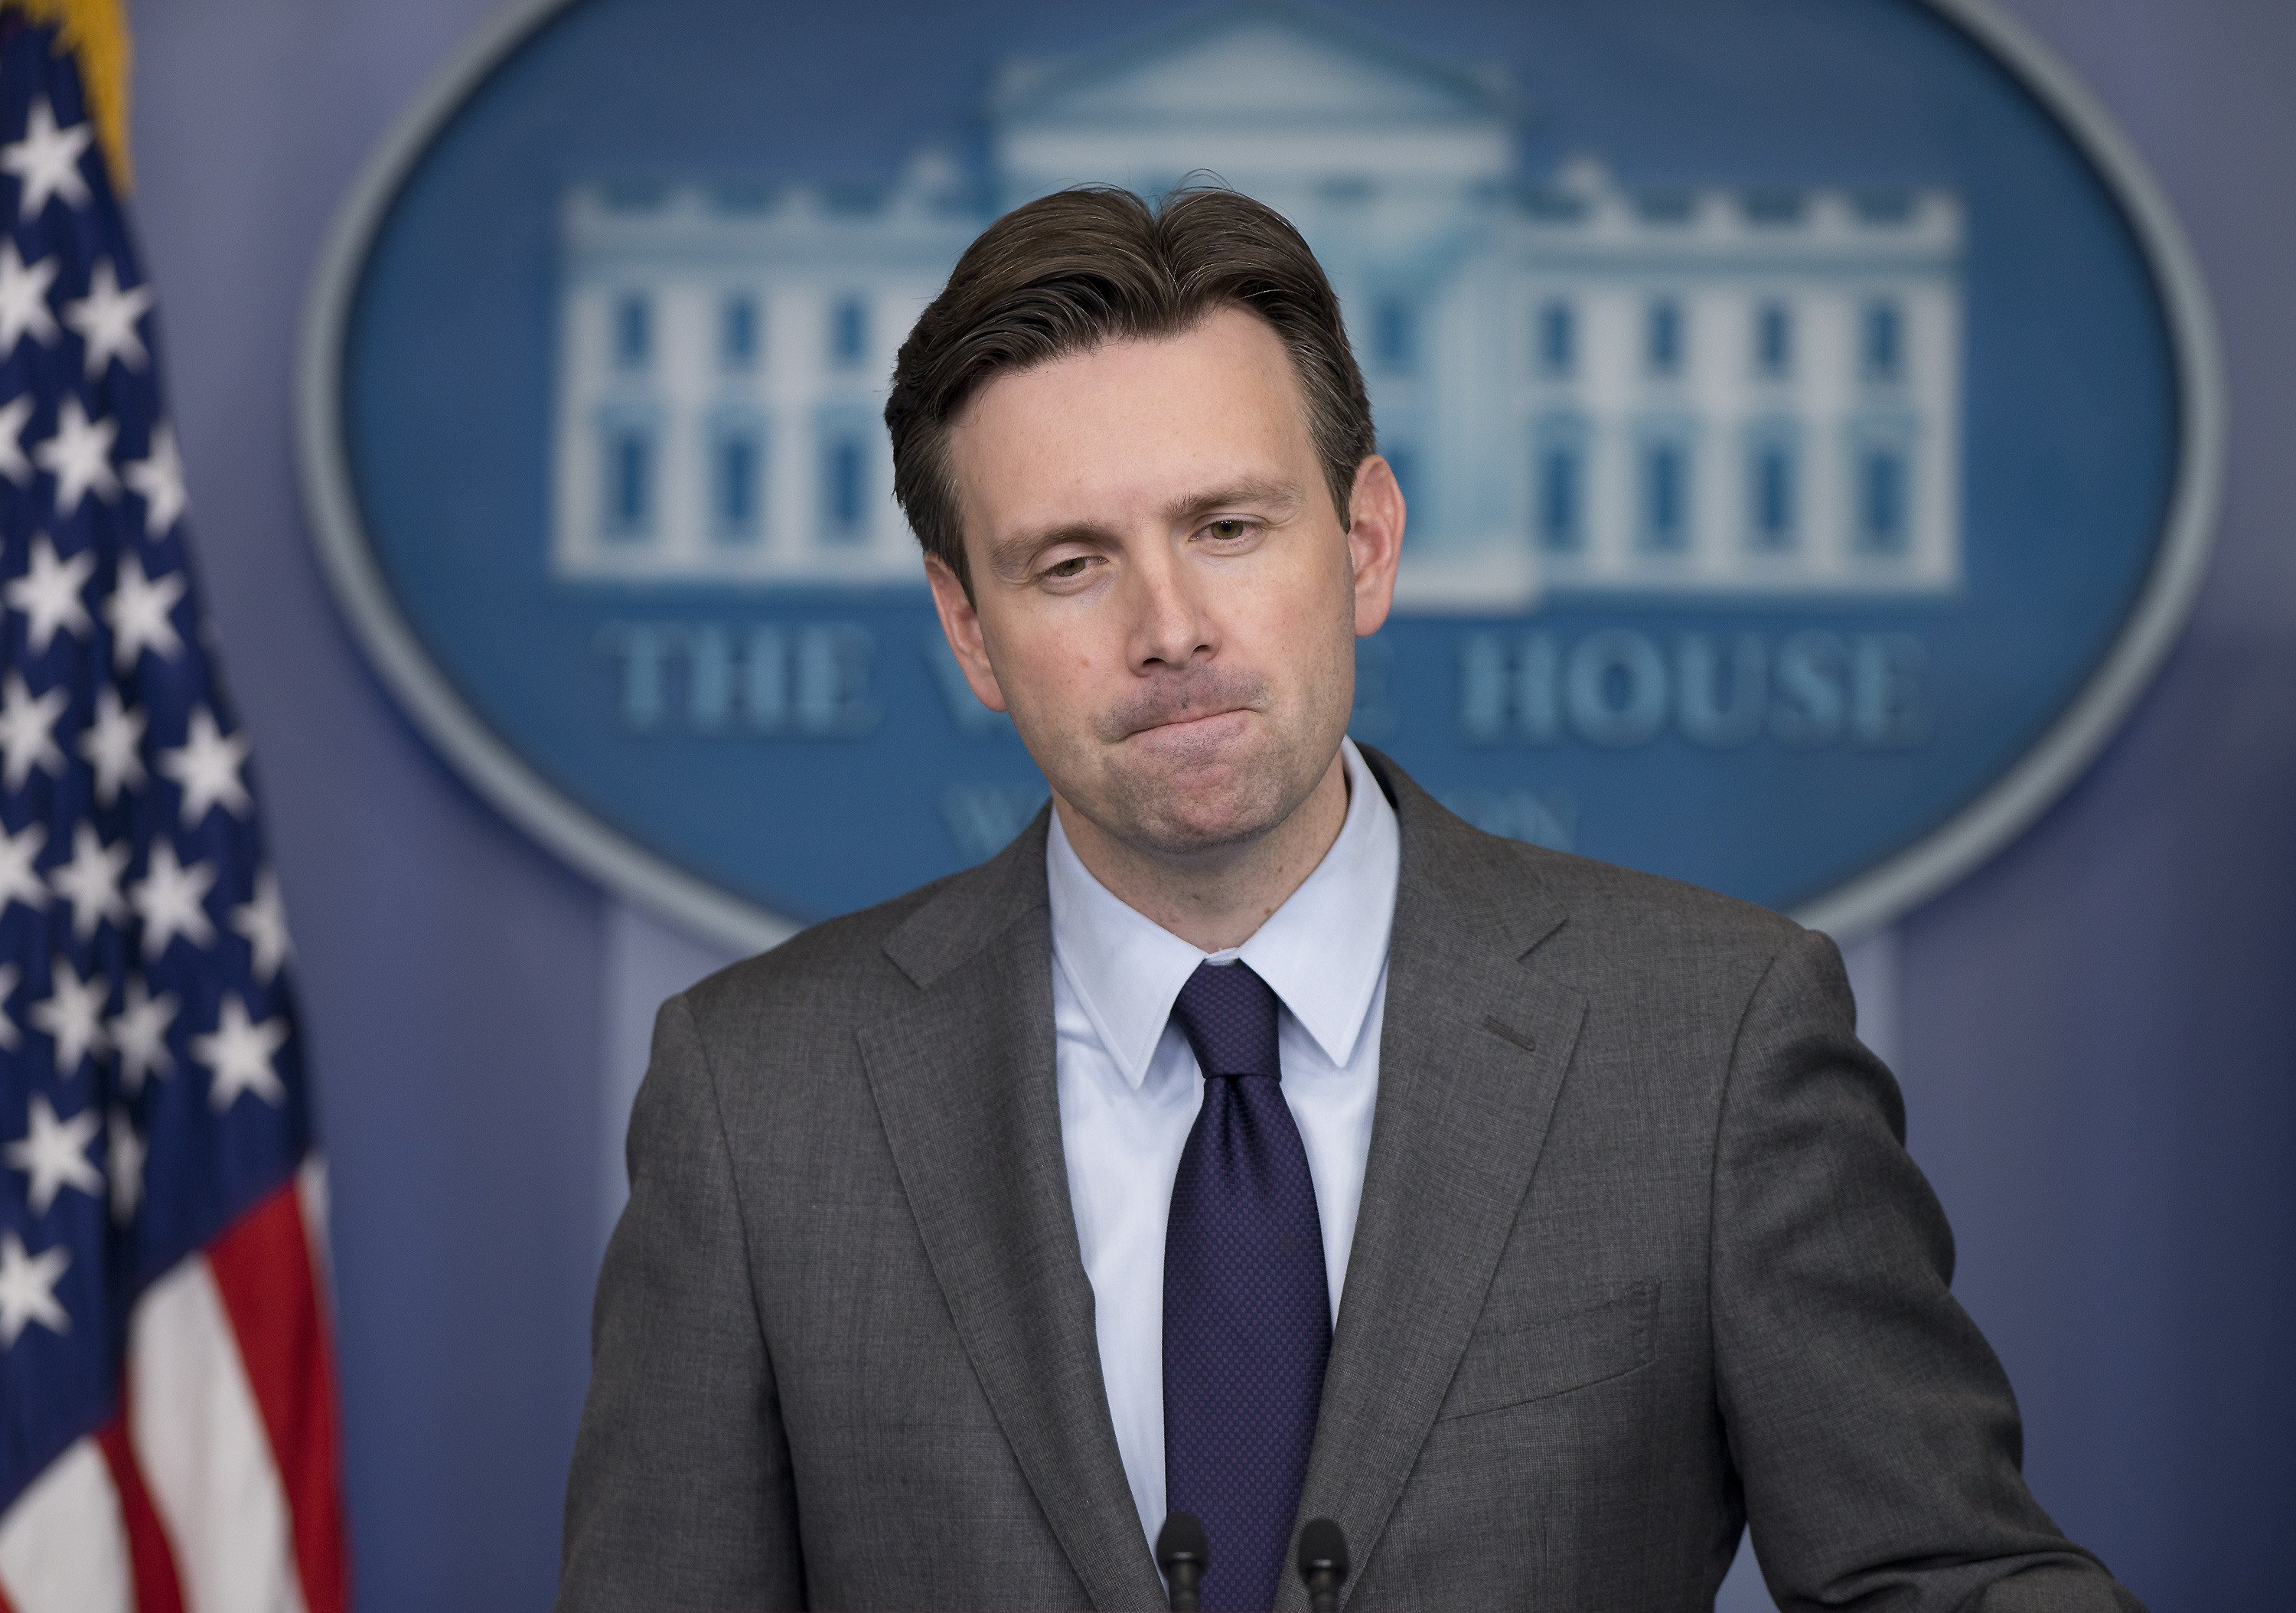 White House Press Secretary Josh Earnest holds the daily briefing in the Brady Press Briefing Room of the White House in Washington, D.C. on Nov. 19, 2014.